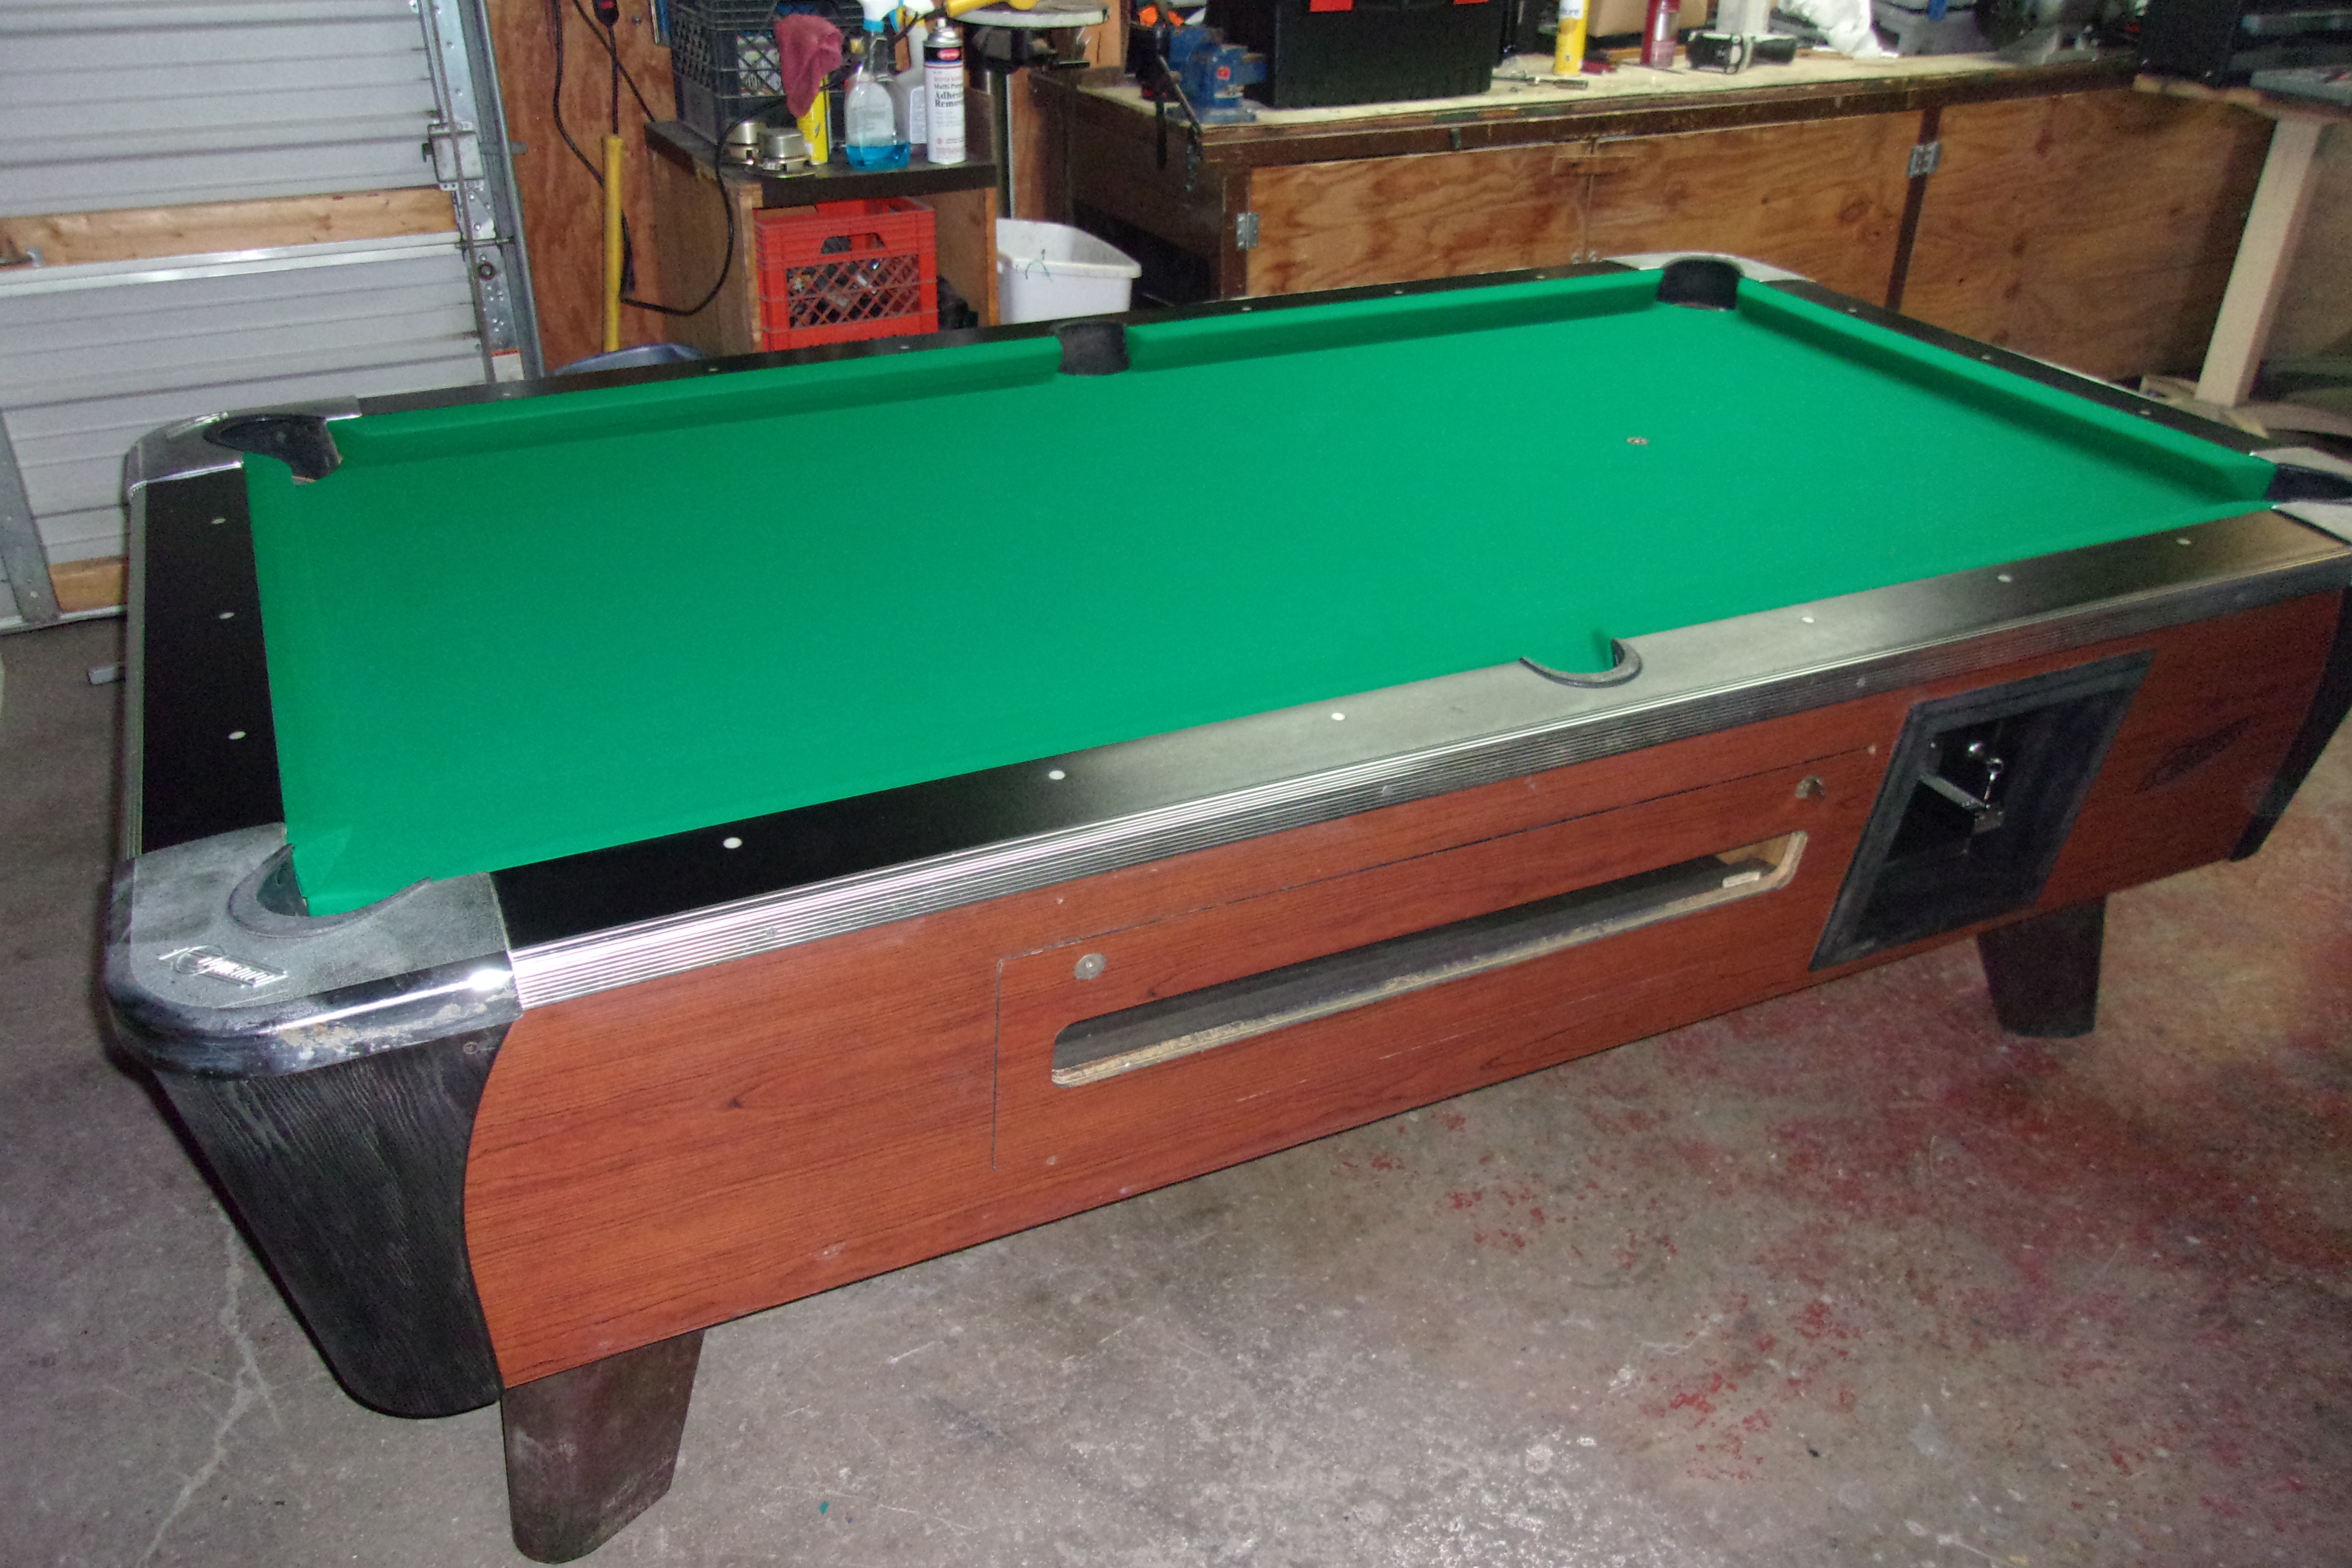 Dynamo Ft Coin Op Pool Table PT Thomas Games - Pool table description